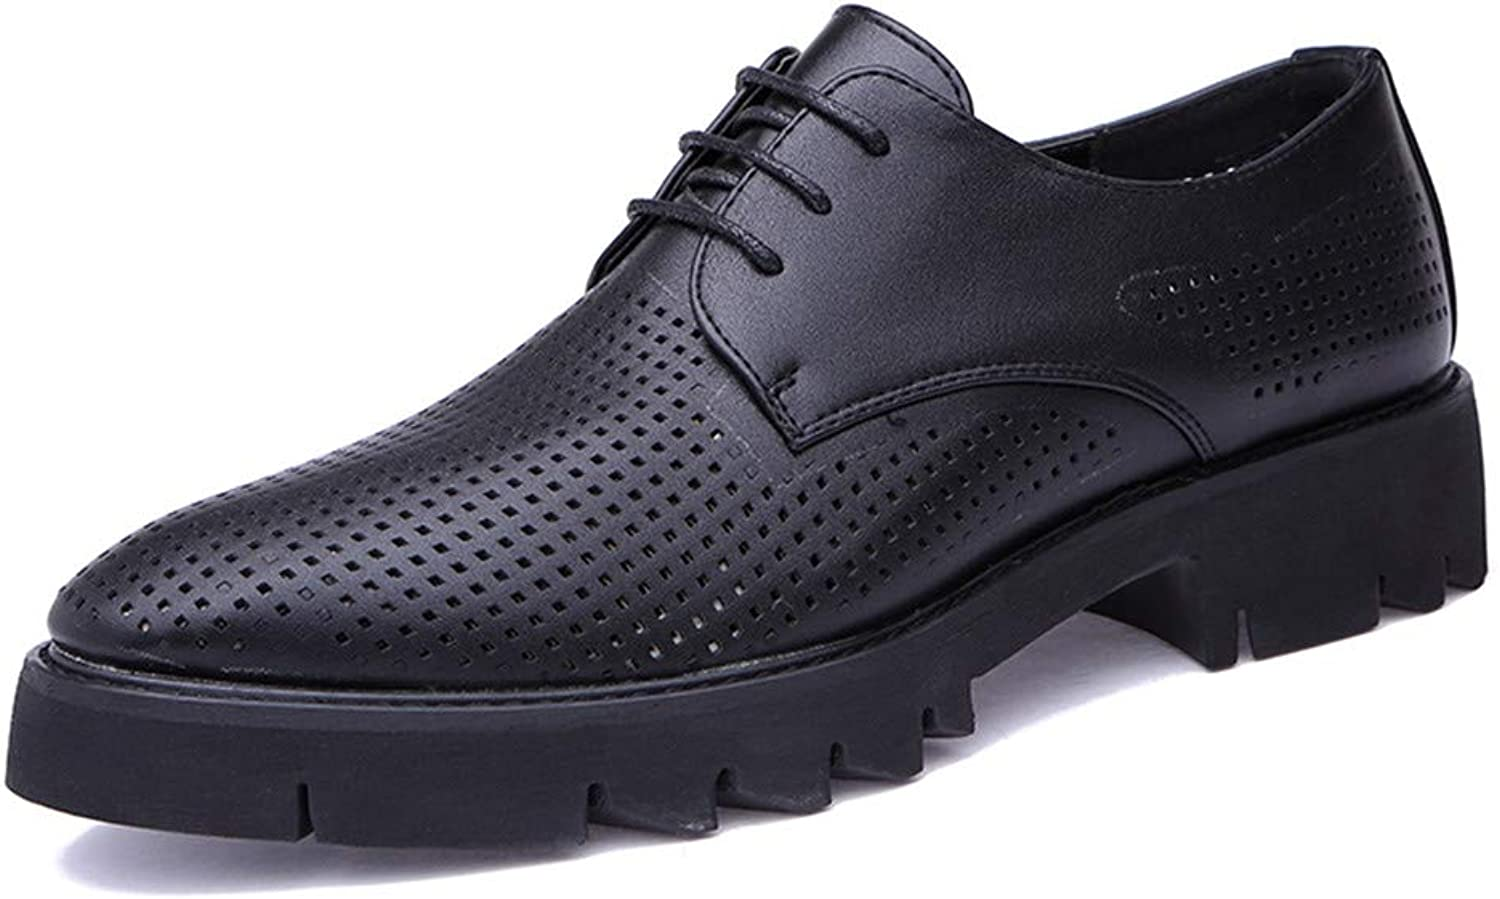 Uniform shoes shoes Men's Business Oxford Summer New Breathable Hollow Classic Outsole Formal shoes Leather shoes